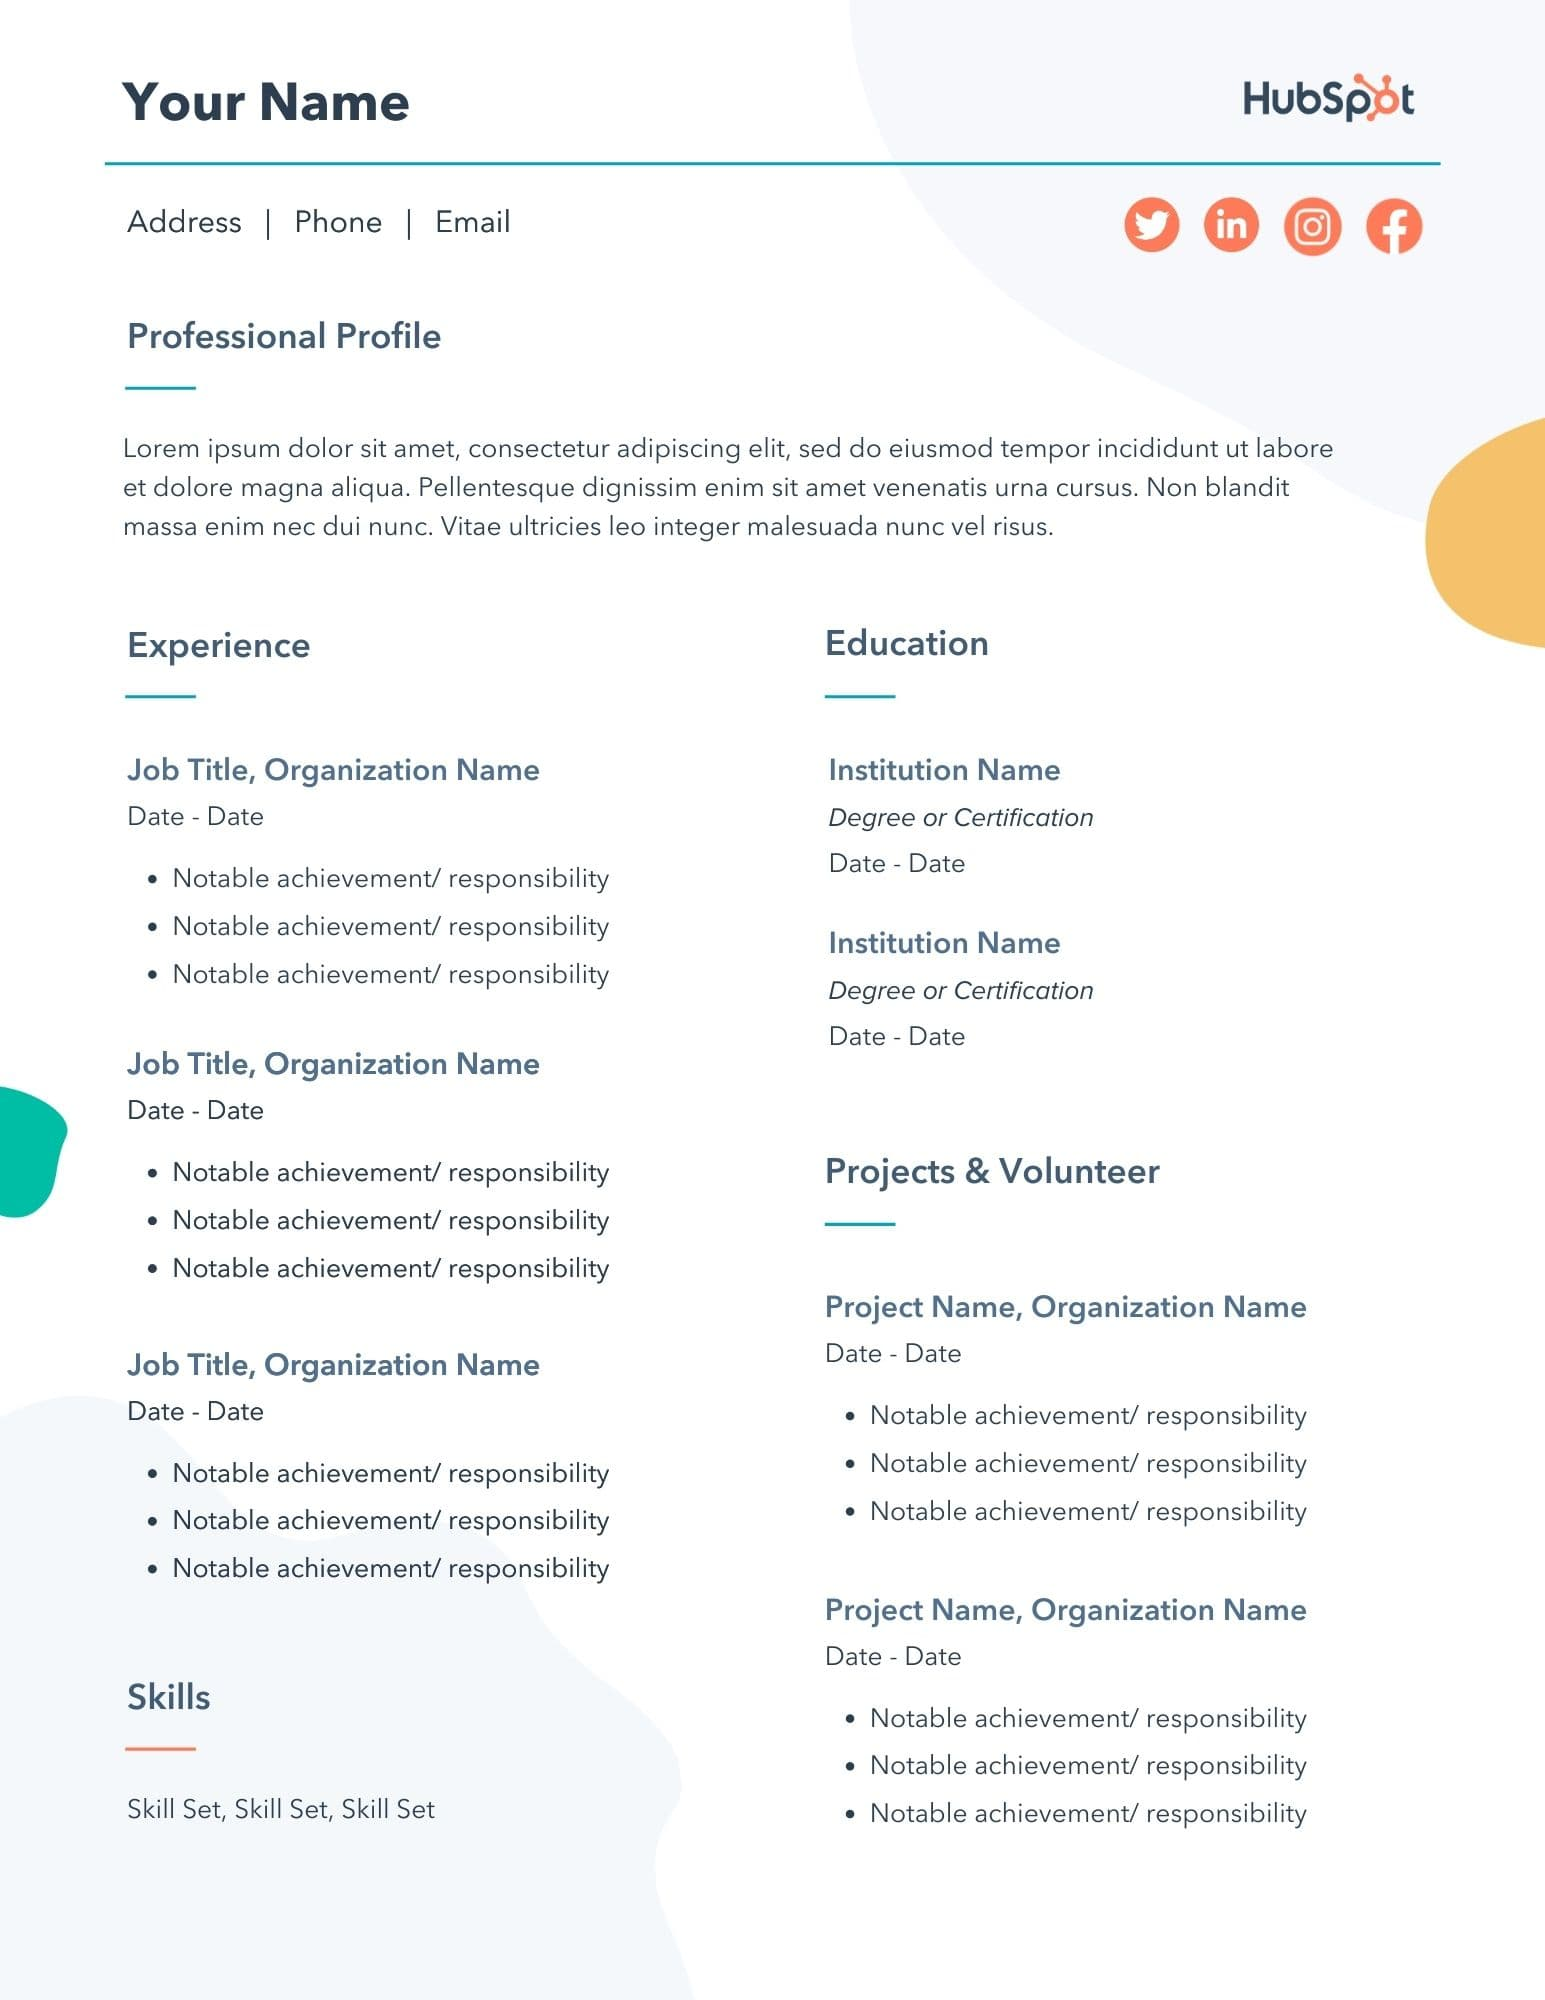 free resume templates for microsoft word to make your own best template product Resume Best Resume Templates 2020 Free Download Word